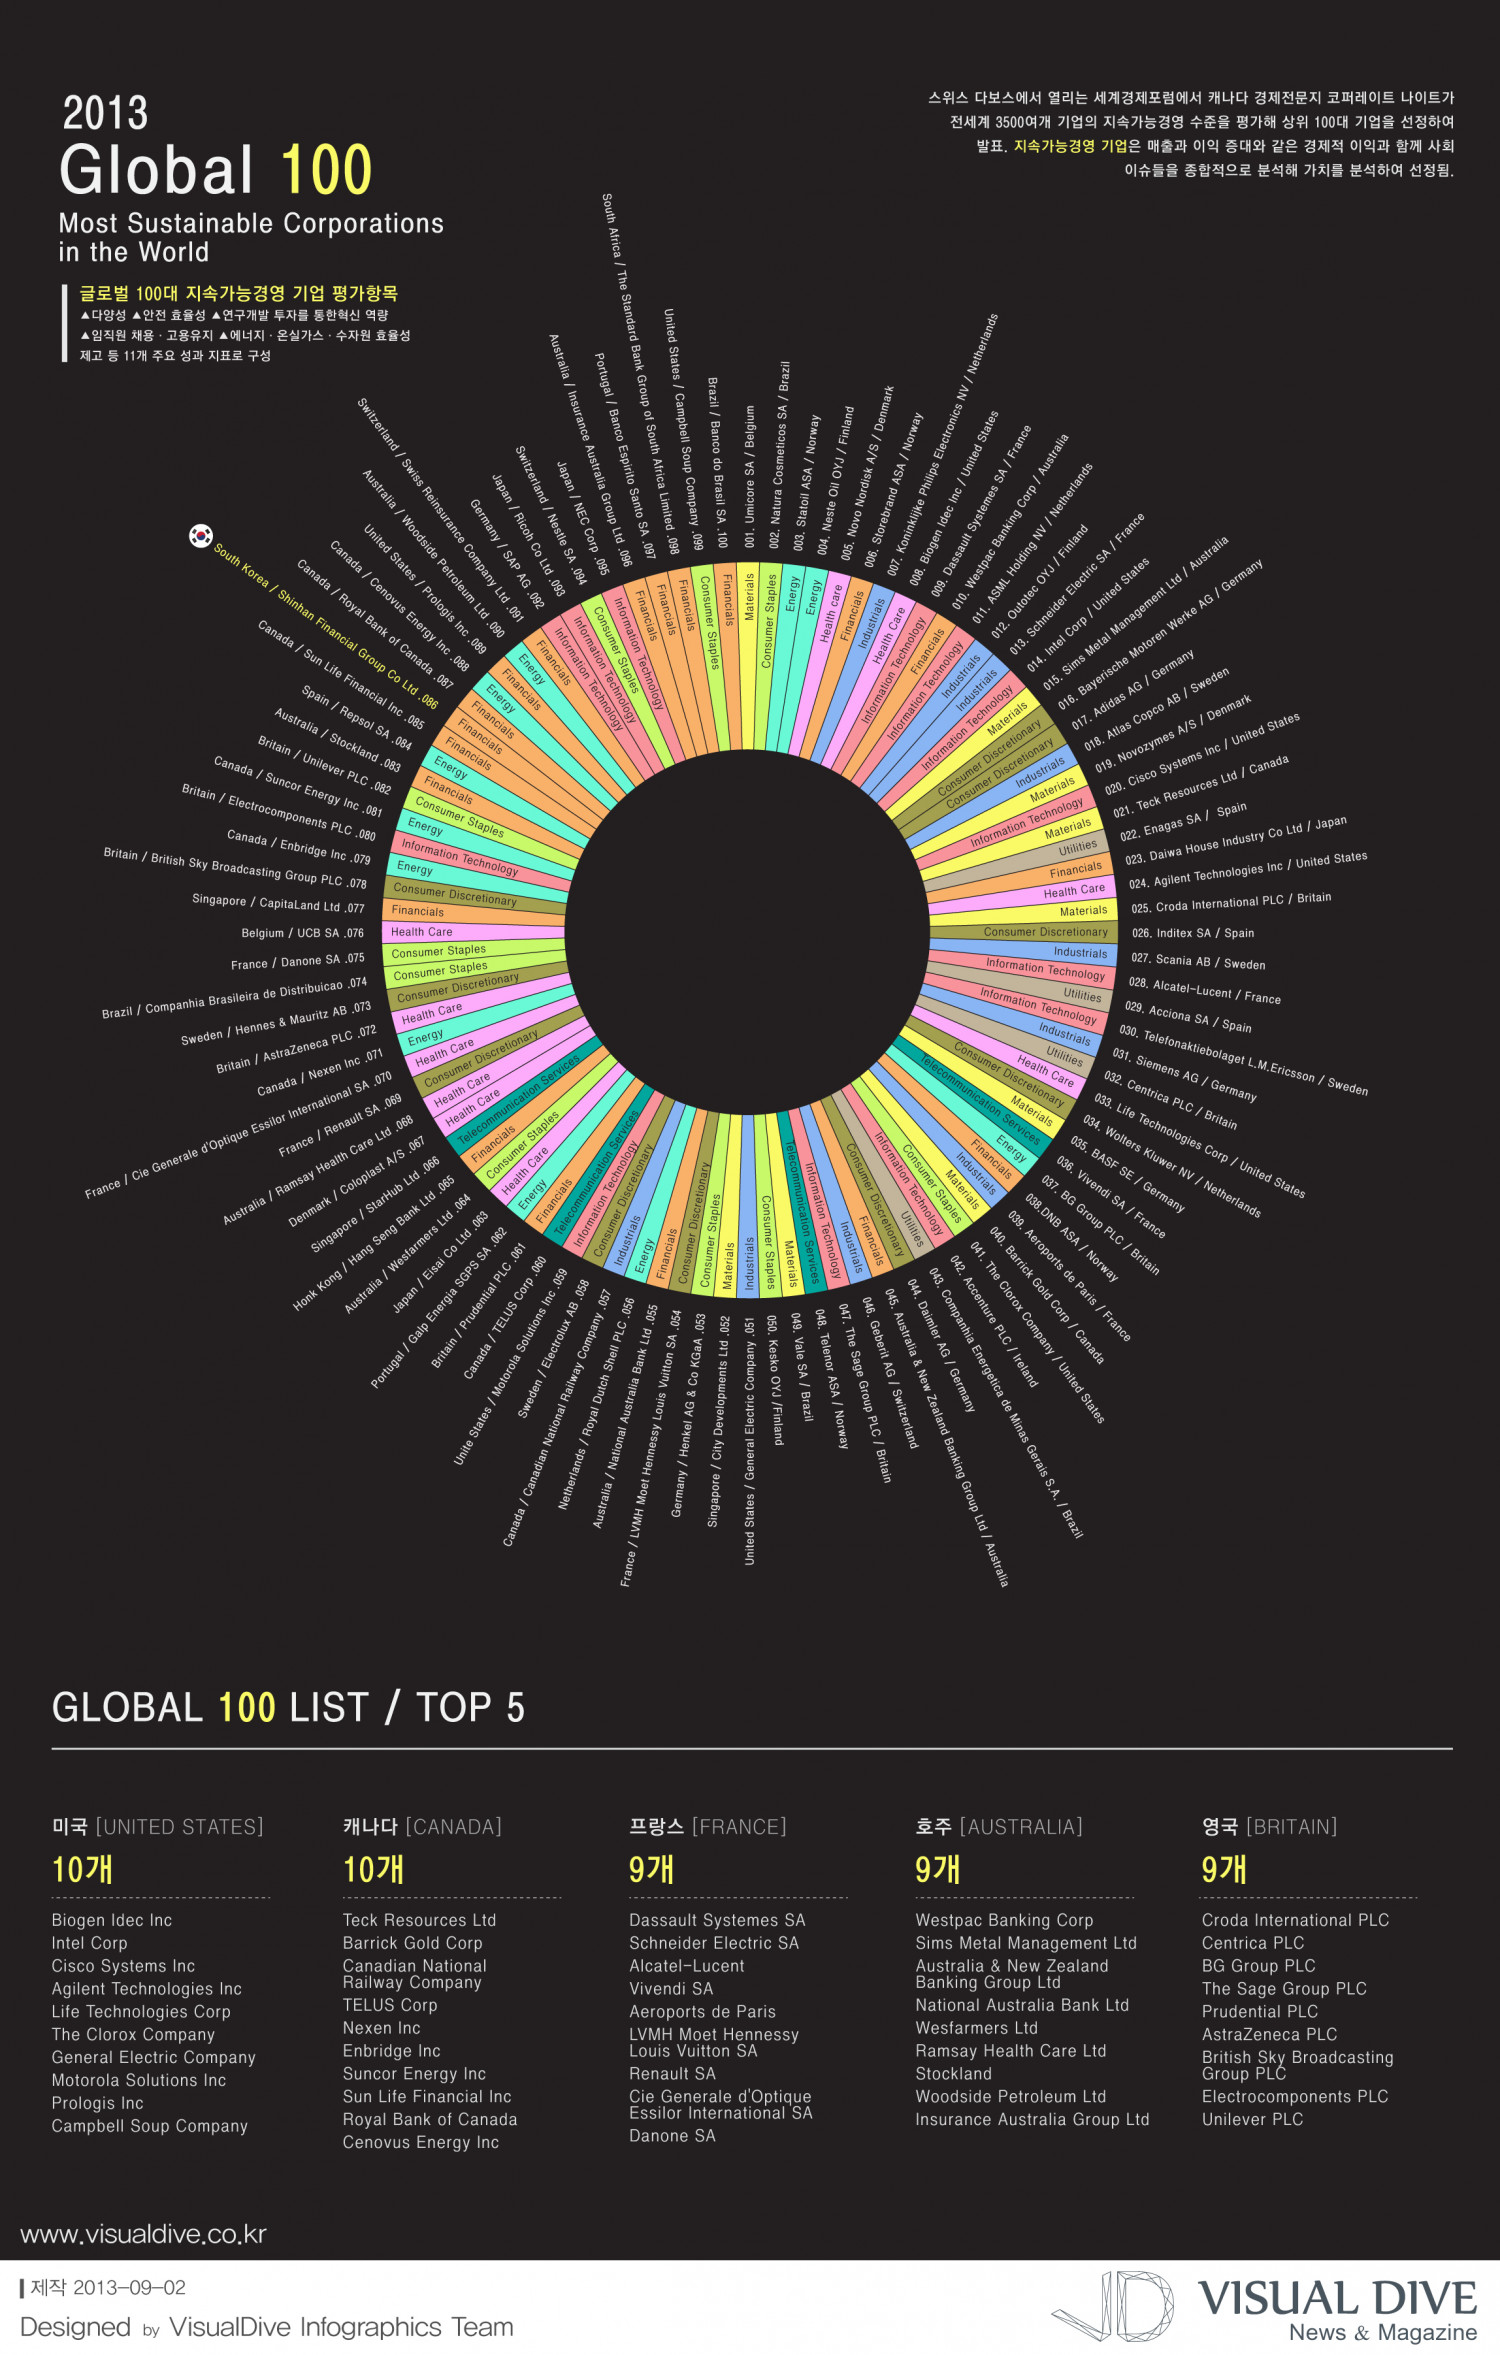 Global 100 Most Sustainable Corporations in the World Infographic